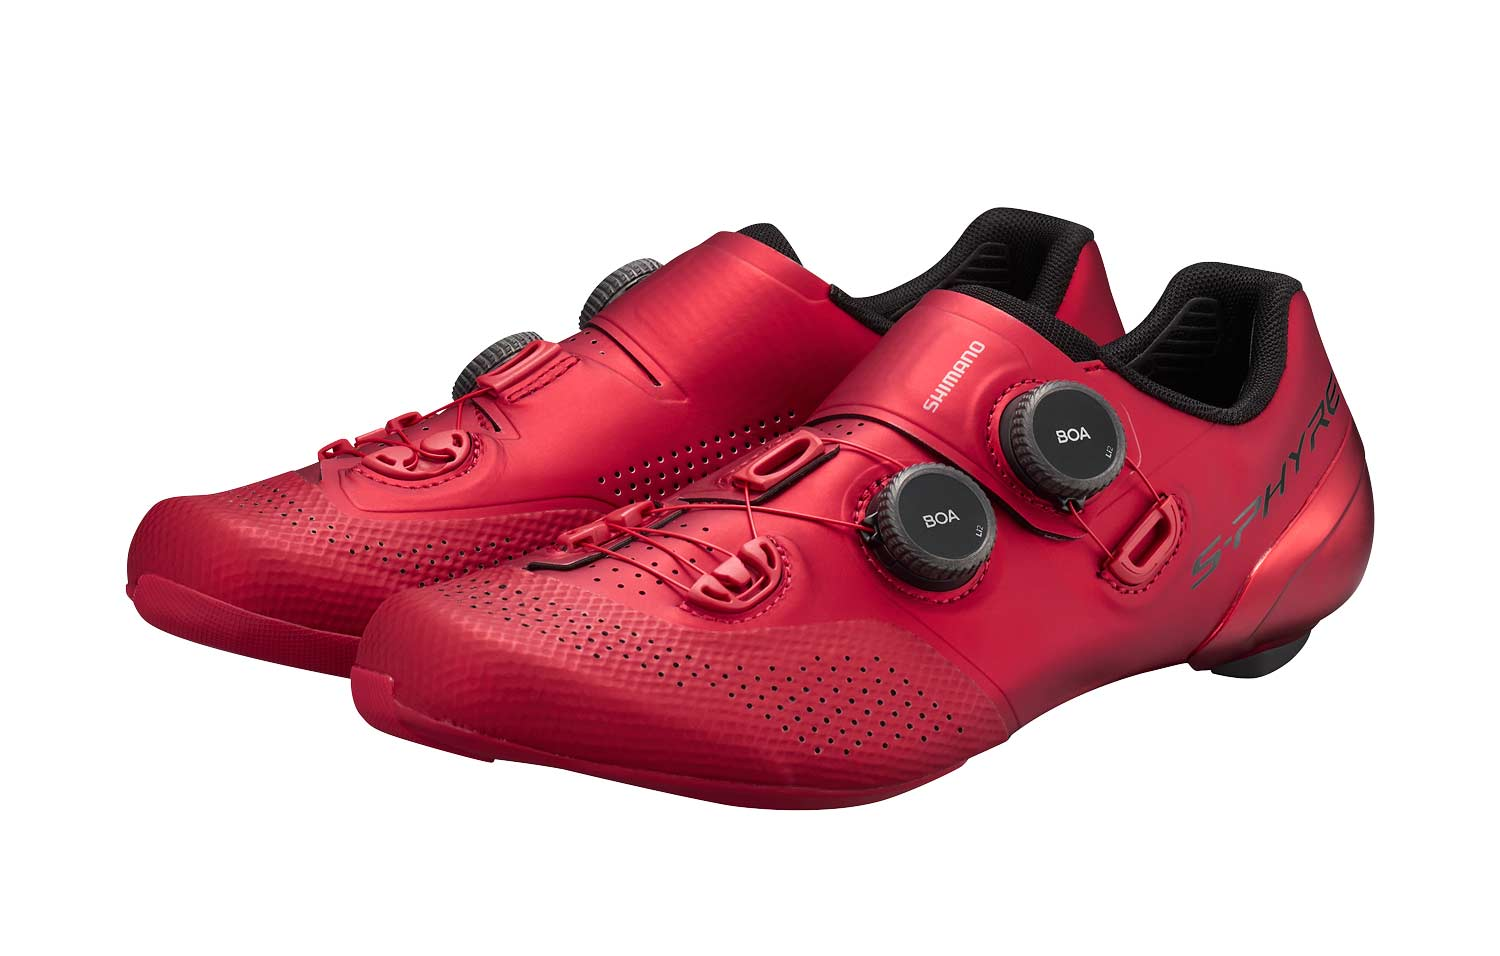 SHIMANO S-PHYRE DYNALAST BICYCLE SHOES